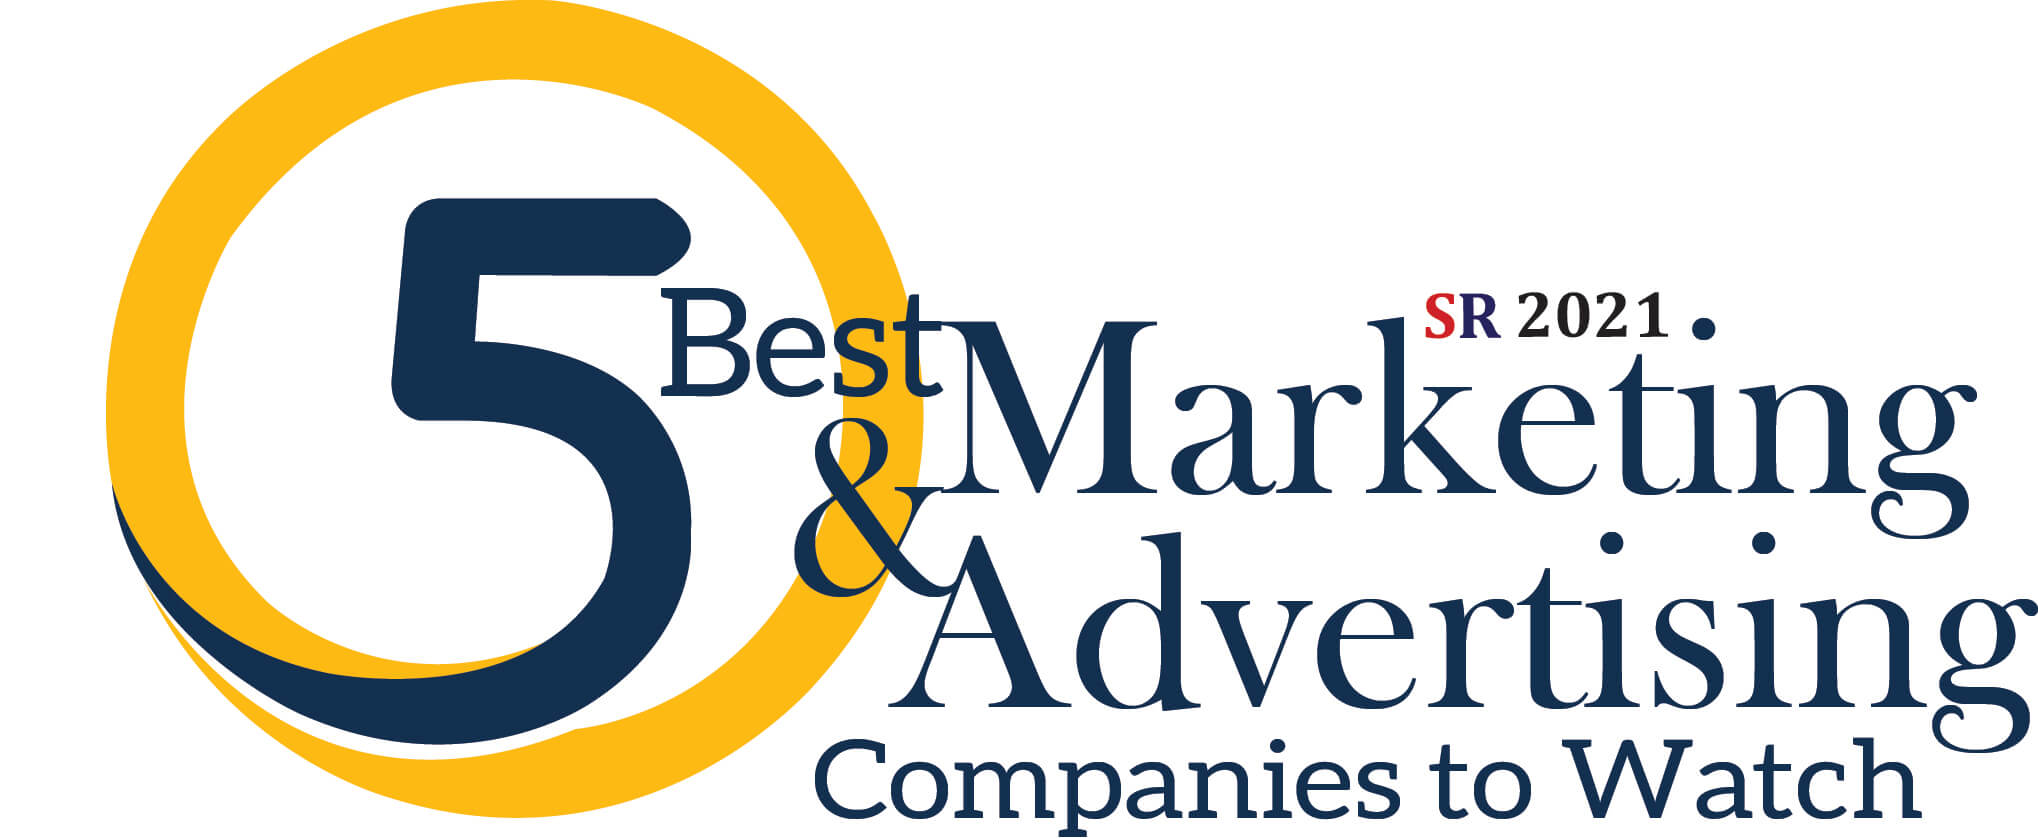 5 Best Marketing and Advertising Companies to Watch.